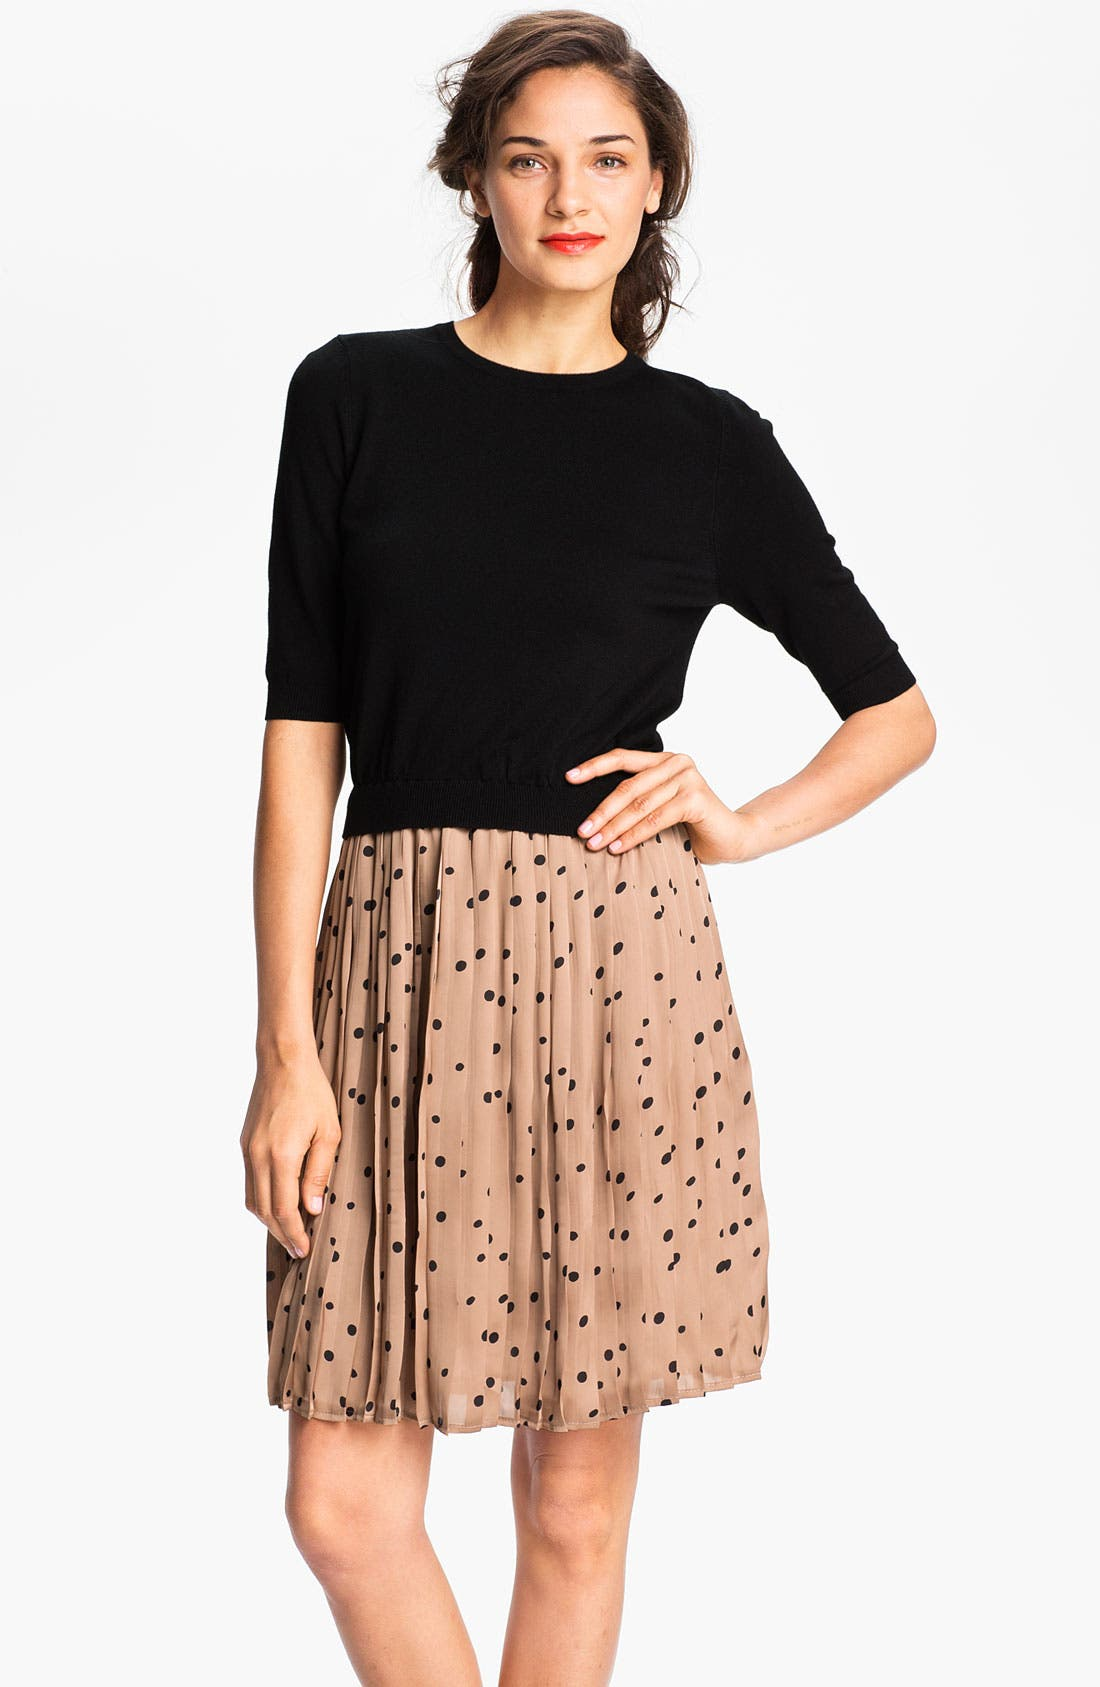 Alternate Image 1 Selected - Taylor Dresses Polka Dot Skirt Sweater Dress